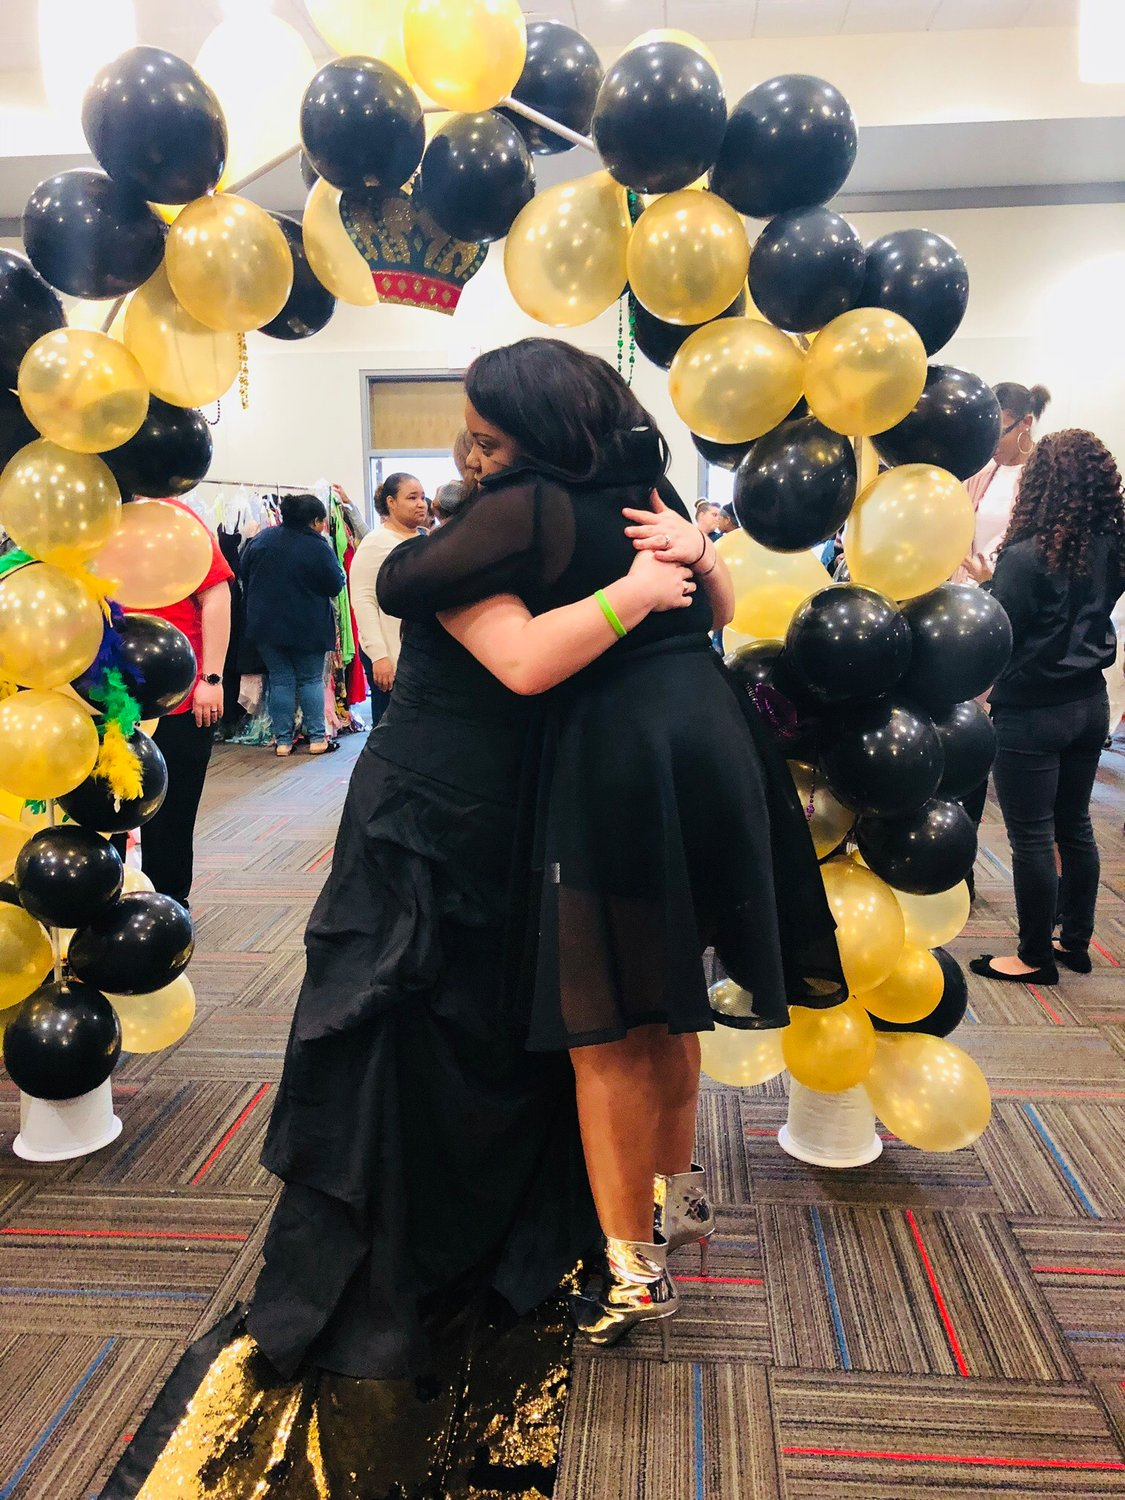 Scottlin Smith, Belles of the Ball's founder and director, embraces one of the event's recipients during the University of West Georgia offering Feb. 17, 2018.